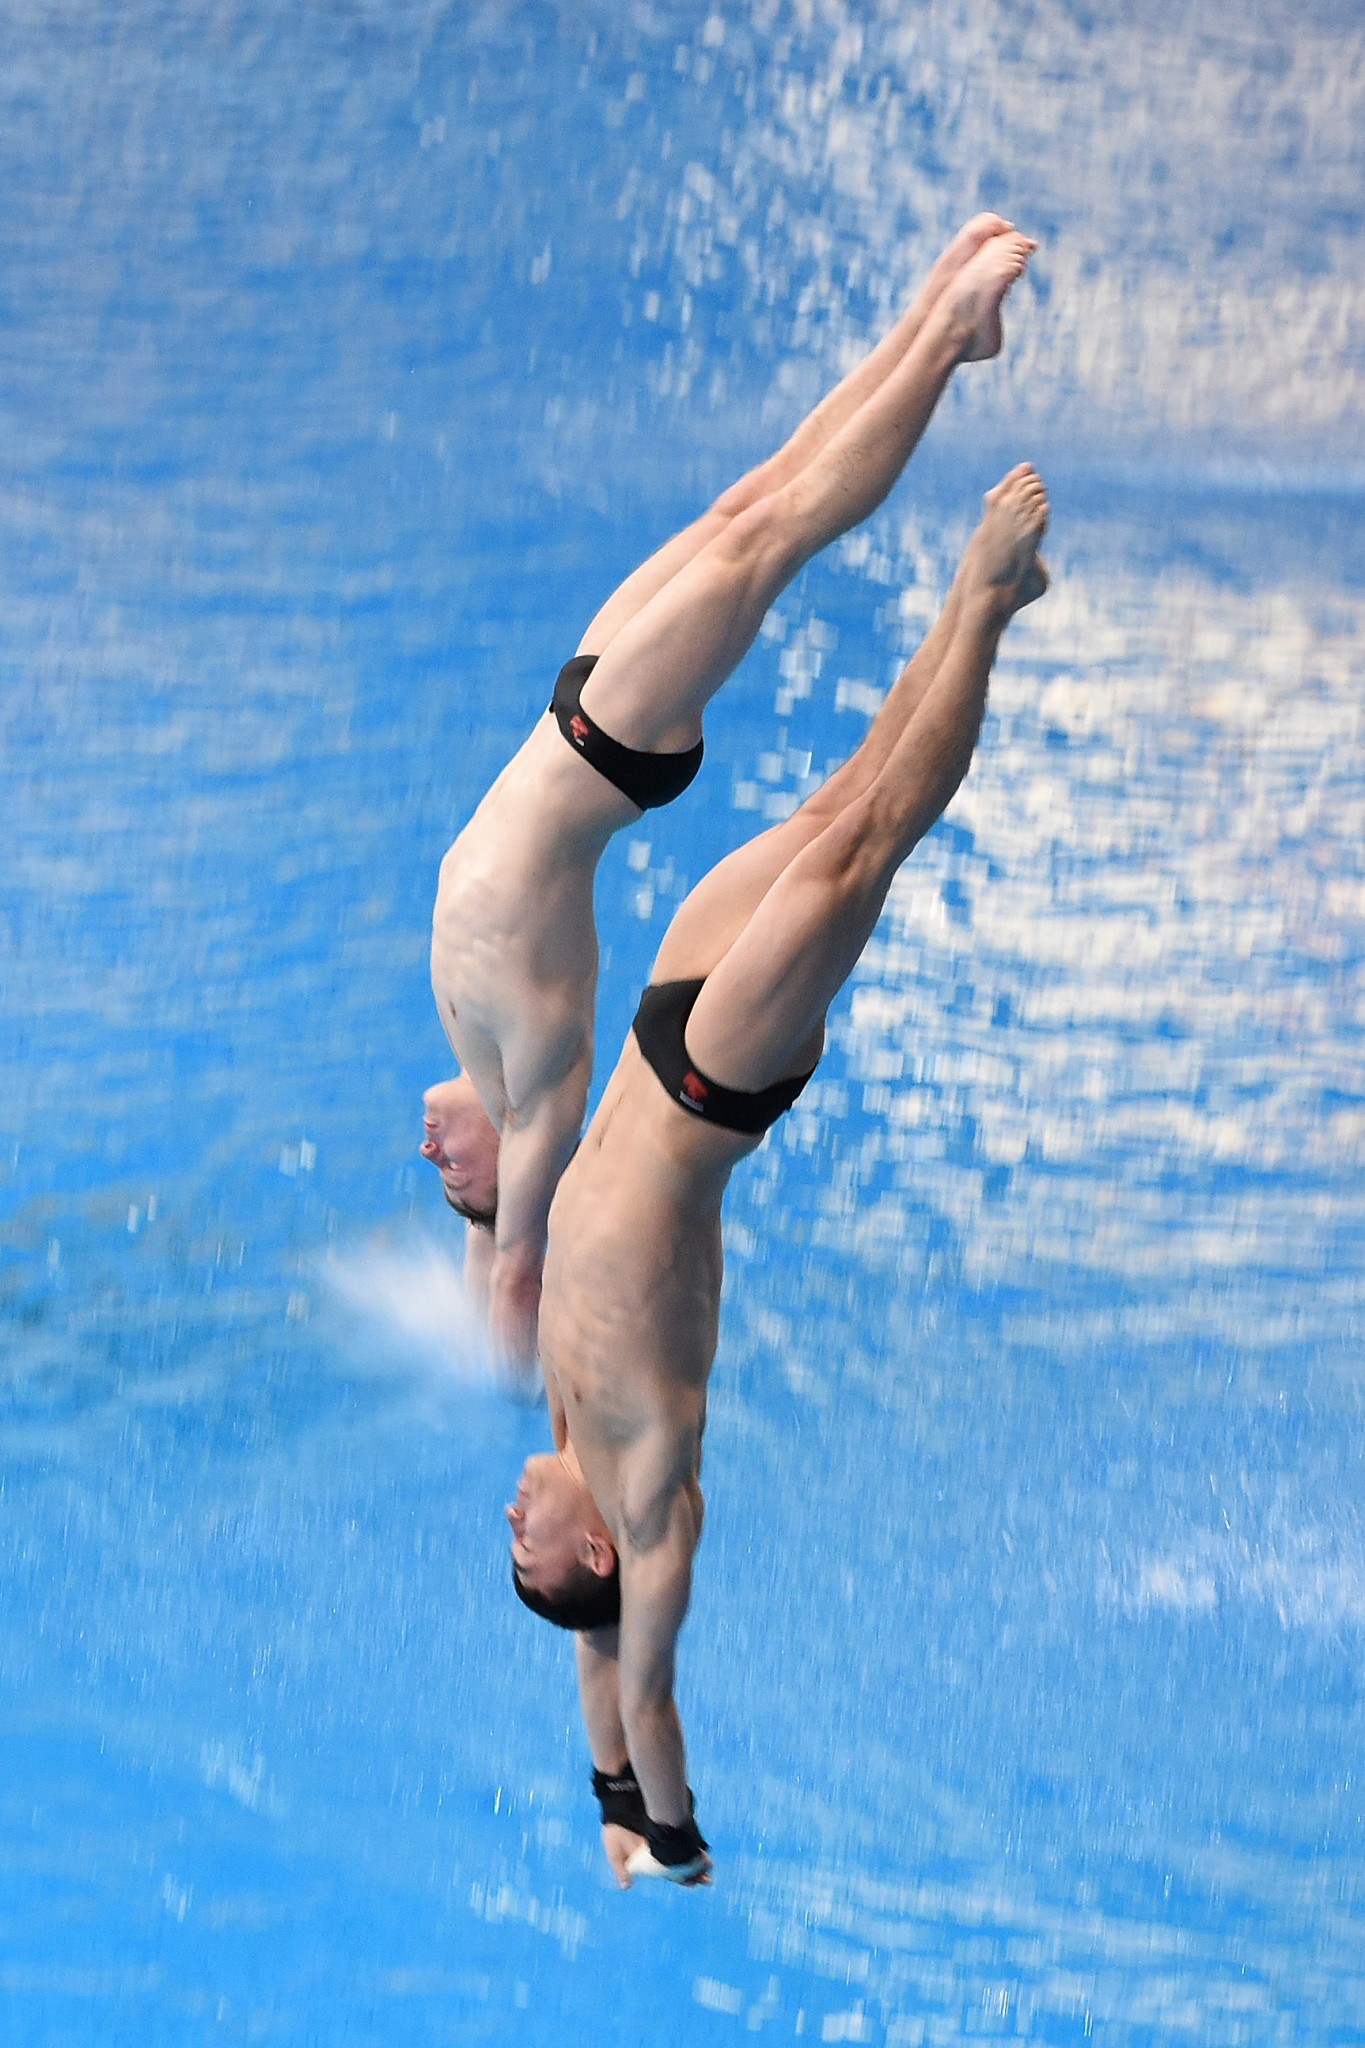 Canadian duo Laurent Gosselin-Paradis and Ethan Pitman's lead in the men's 10m synchro was never in doubt, as they won gold in Madrid ©Getty Images